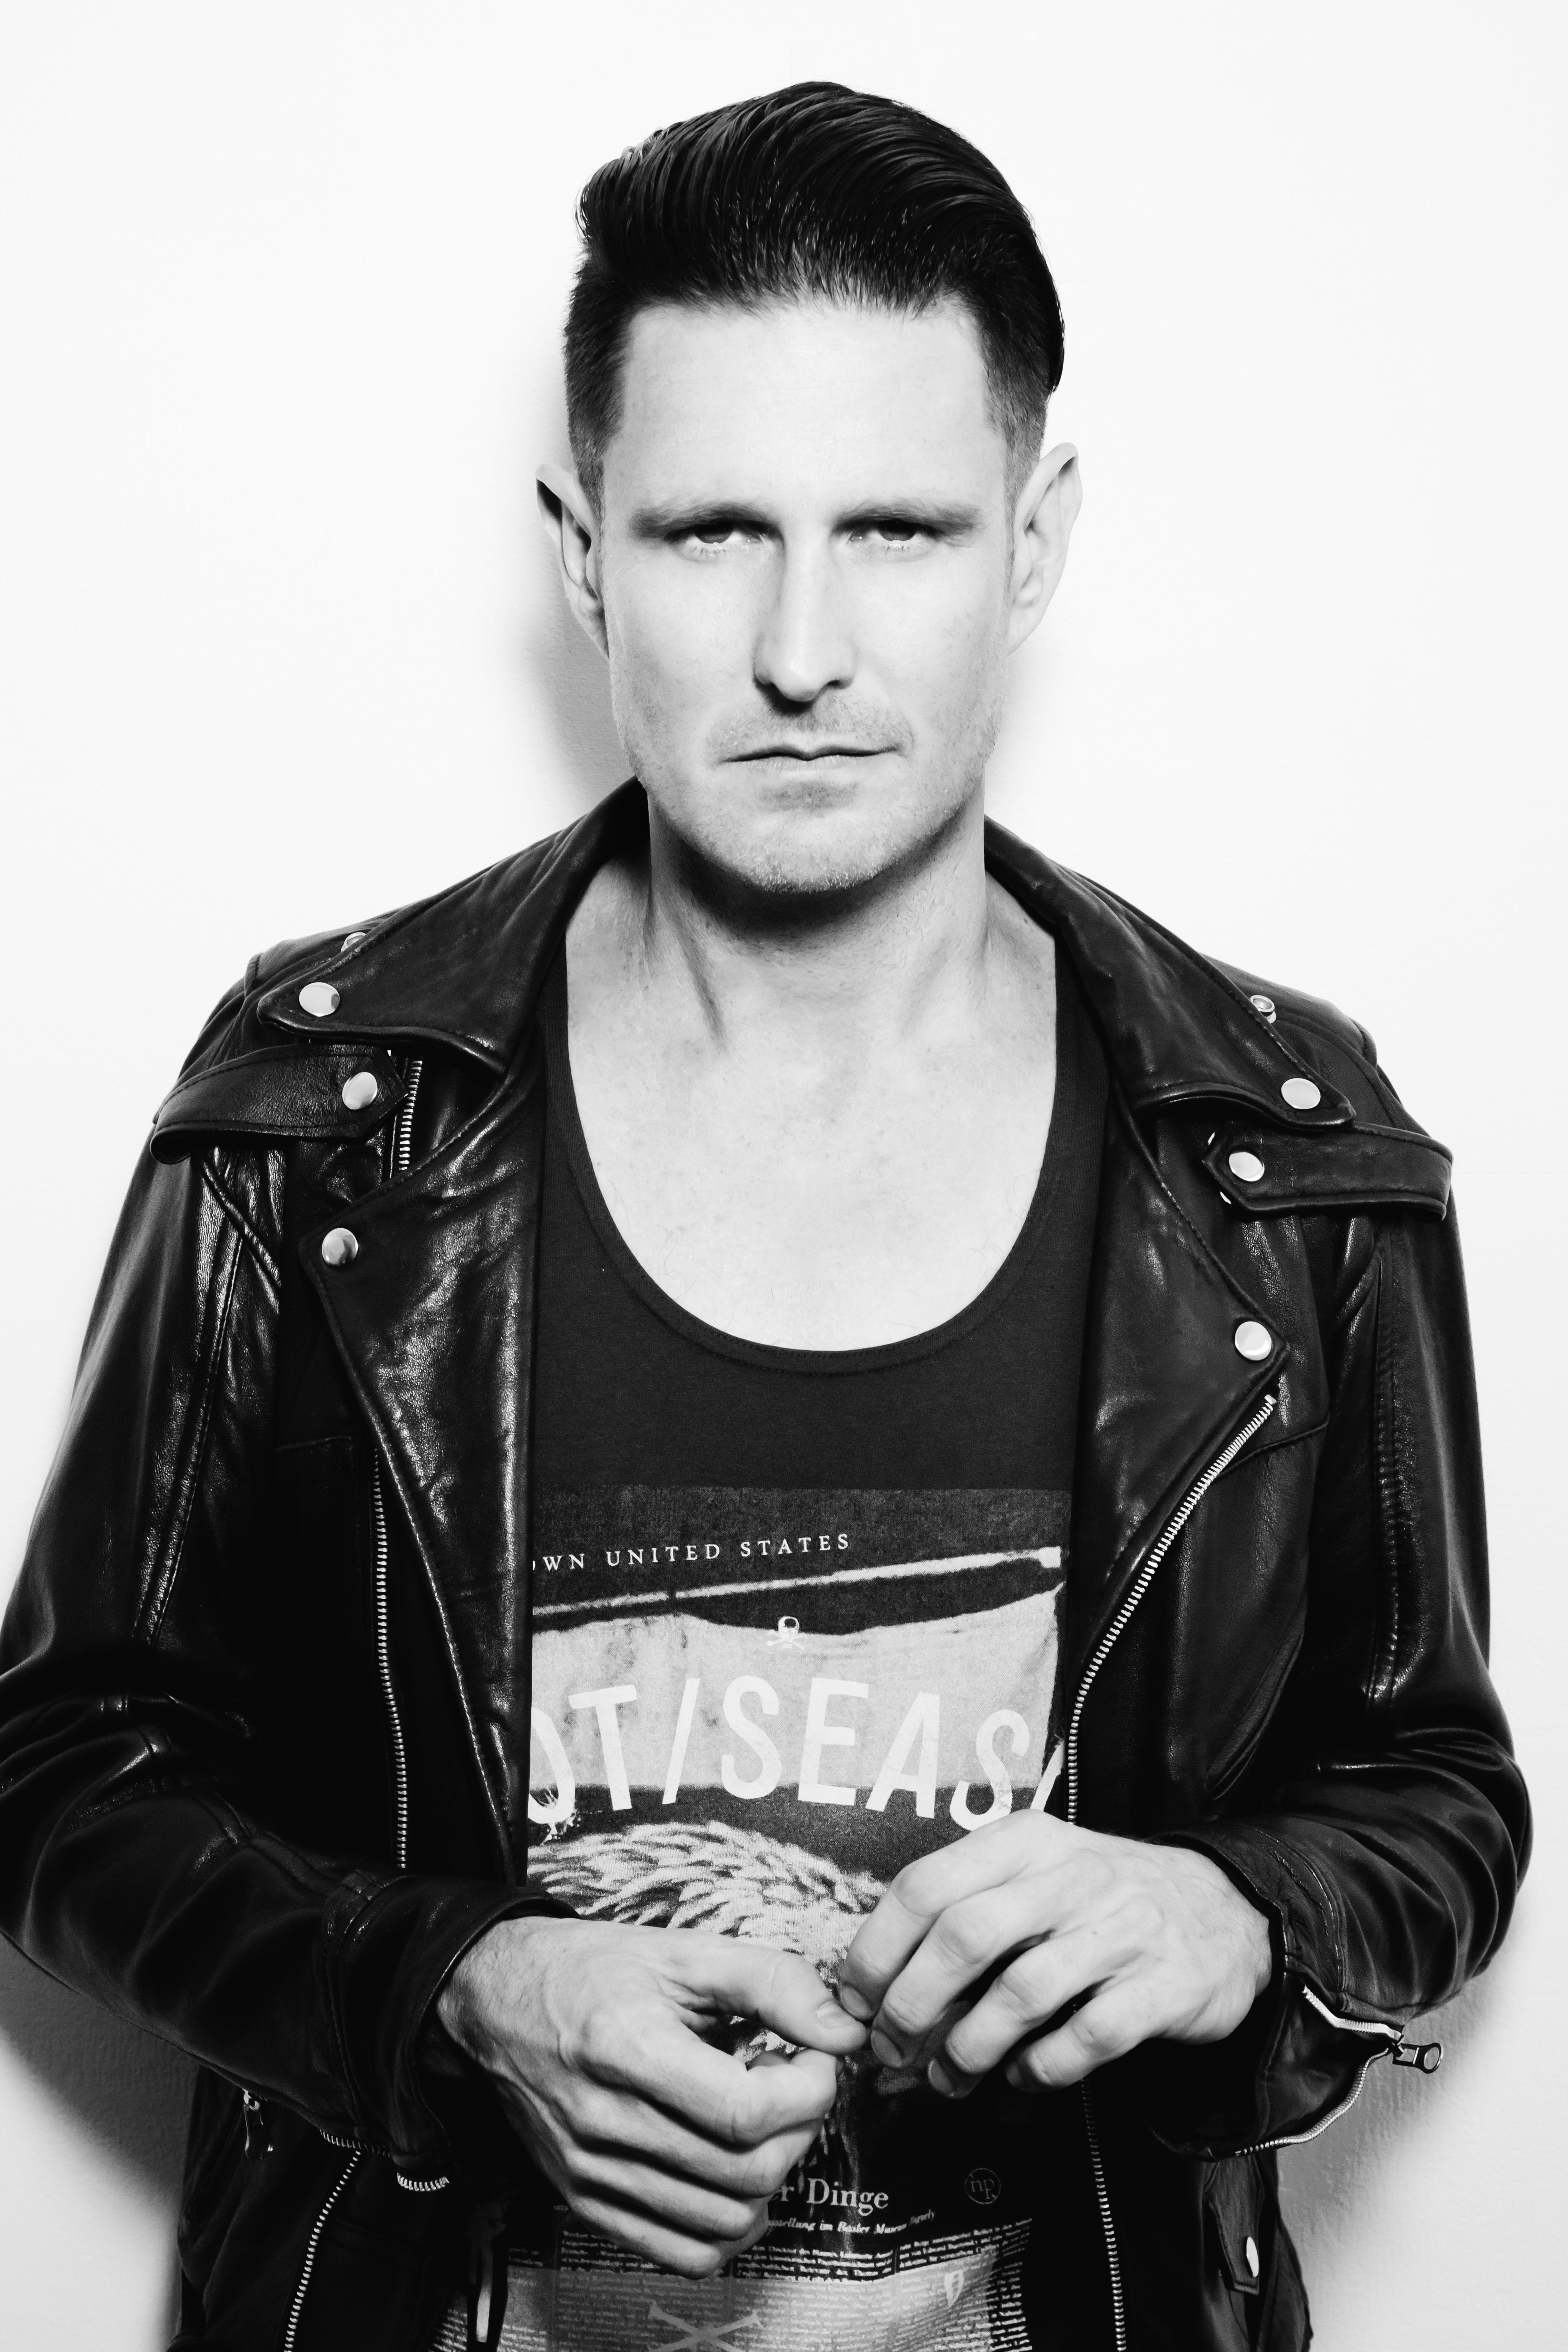 GOODWIL – WIL ANDERSON